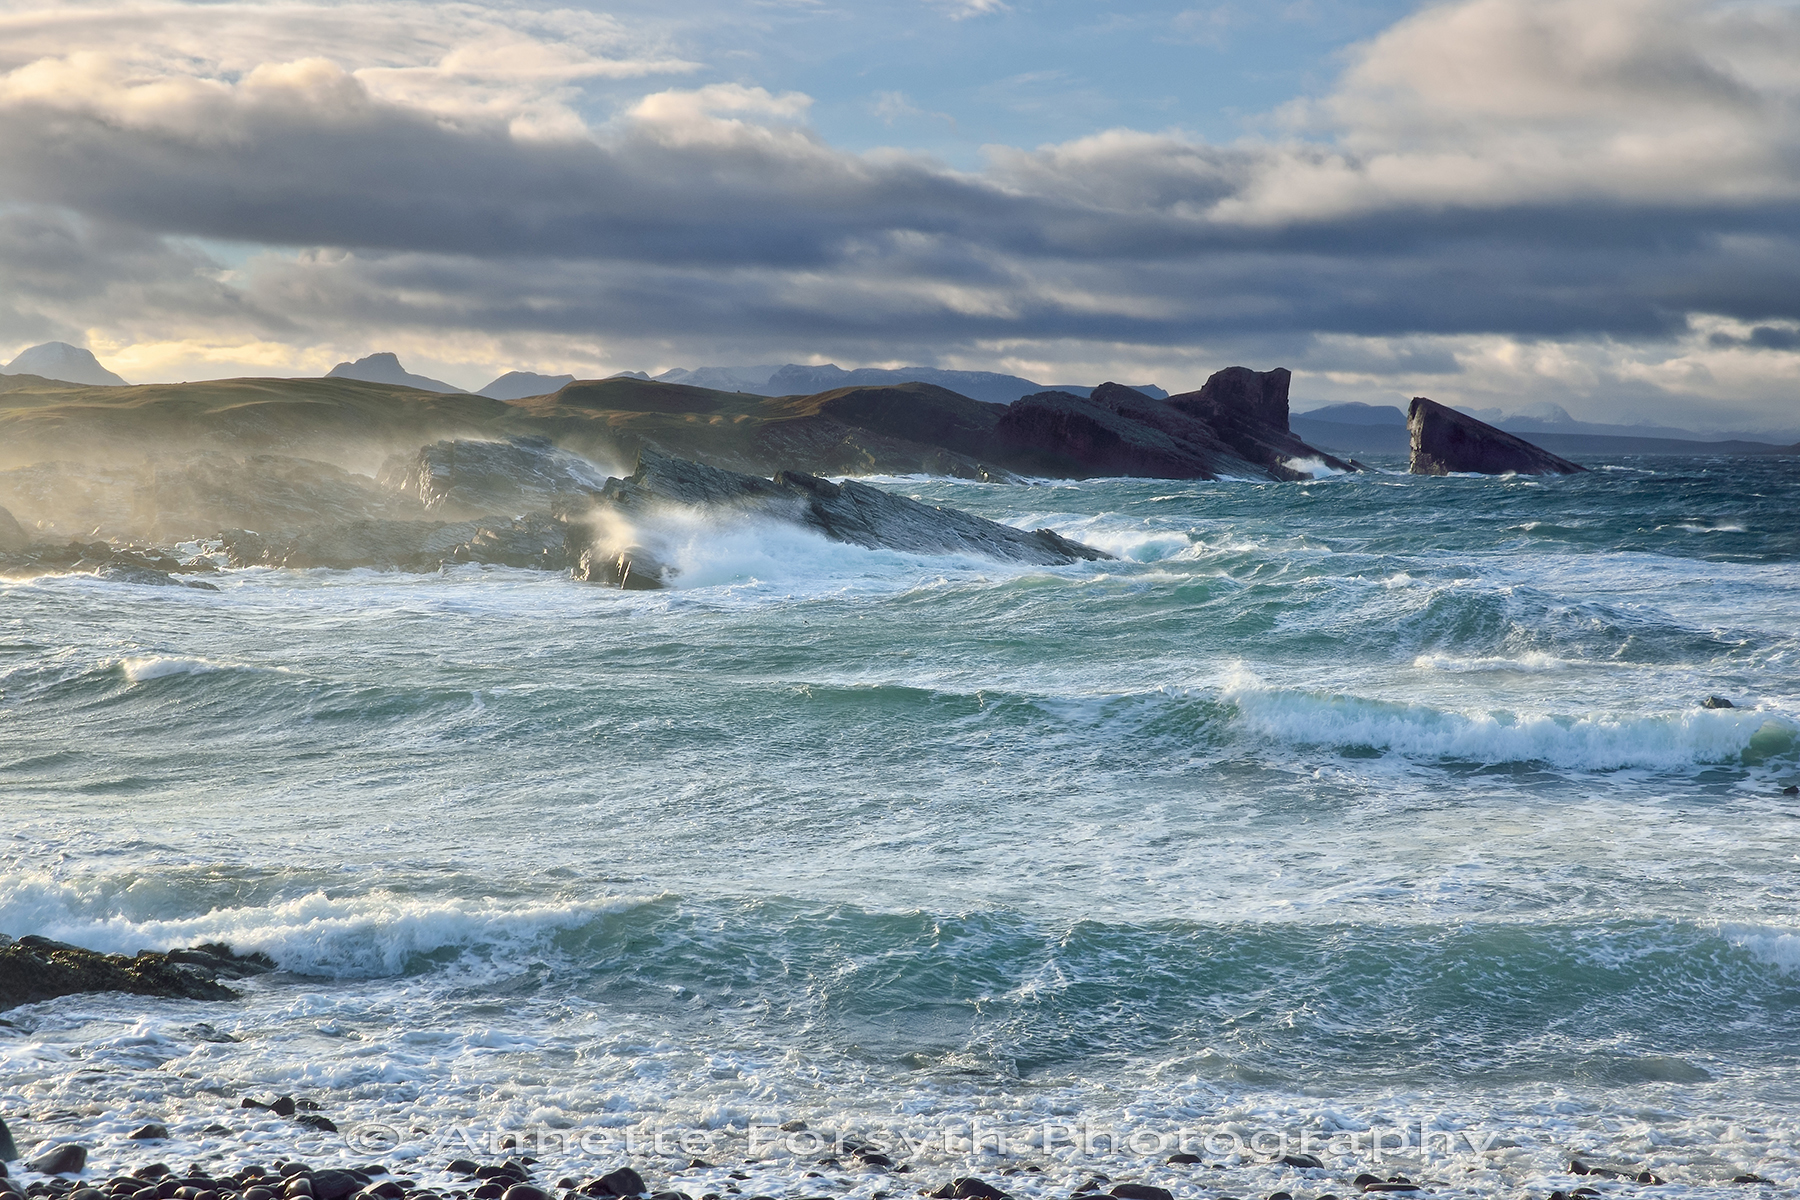 Stormy Seas at Sunrise, Clach Toll, Scotland